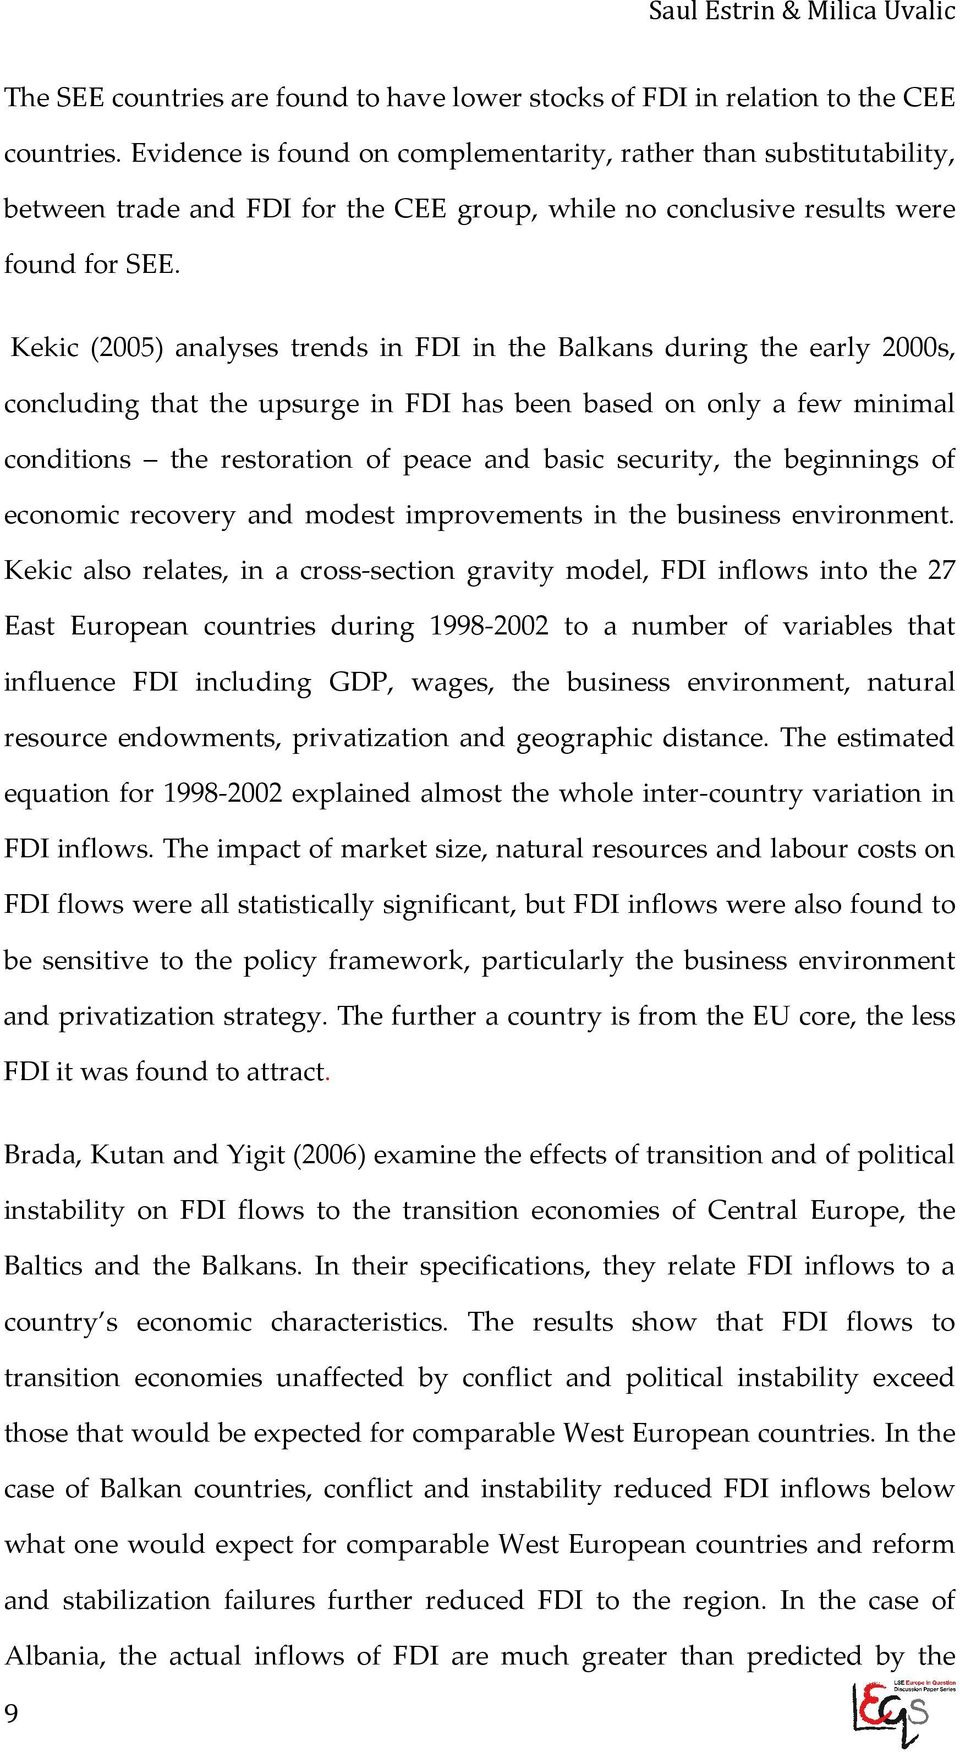 Kekic (2005) analyses trends in FDI in the Balkans during the early 2000s, concluding that the upsurge in FDI has been based on only a few minimal conditions the restoration of peace and basic